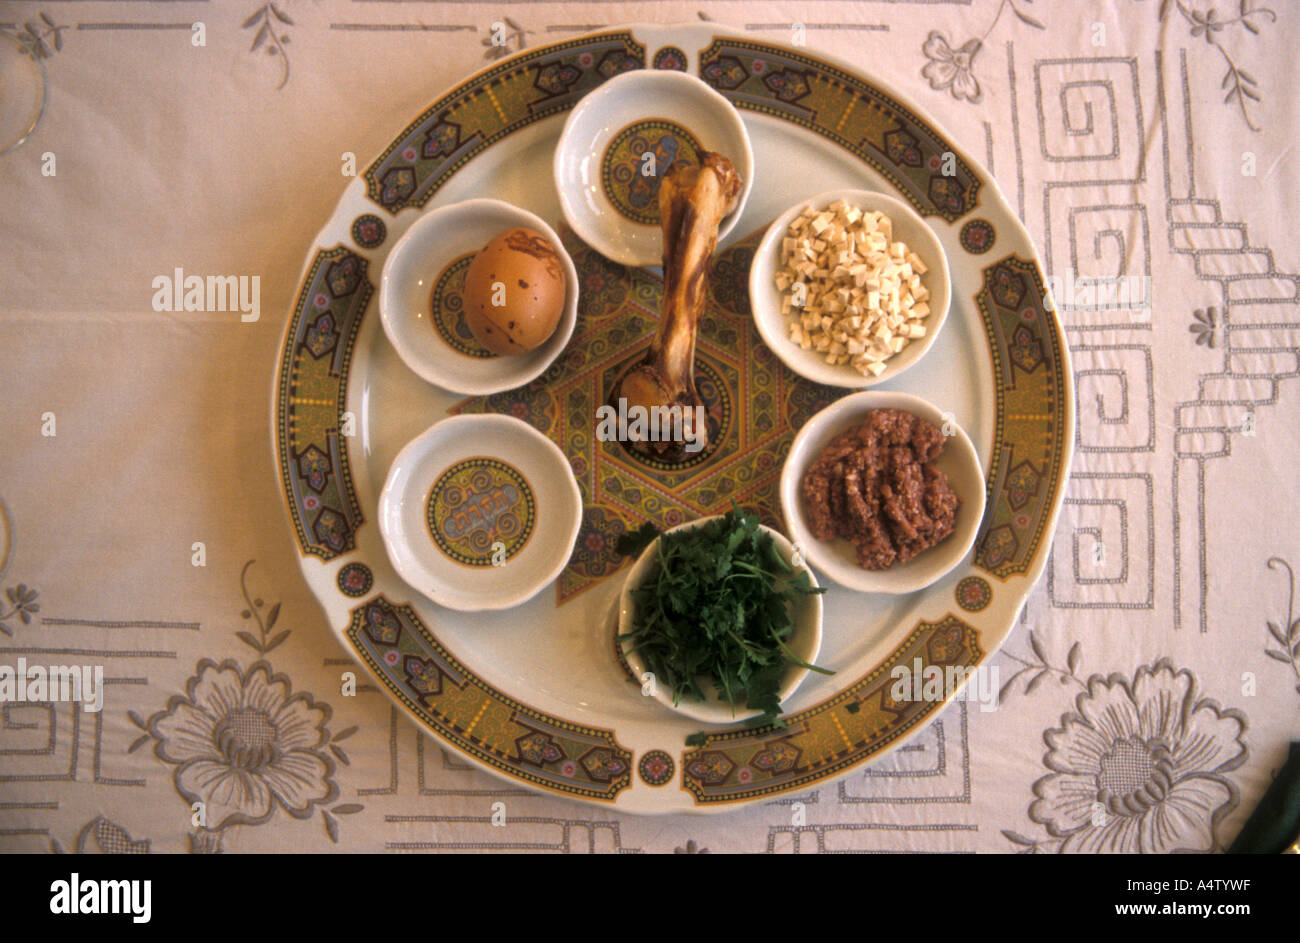 Seder Plate Is A Central Observance On The Jewish Passover